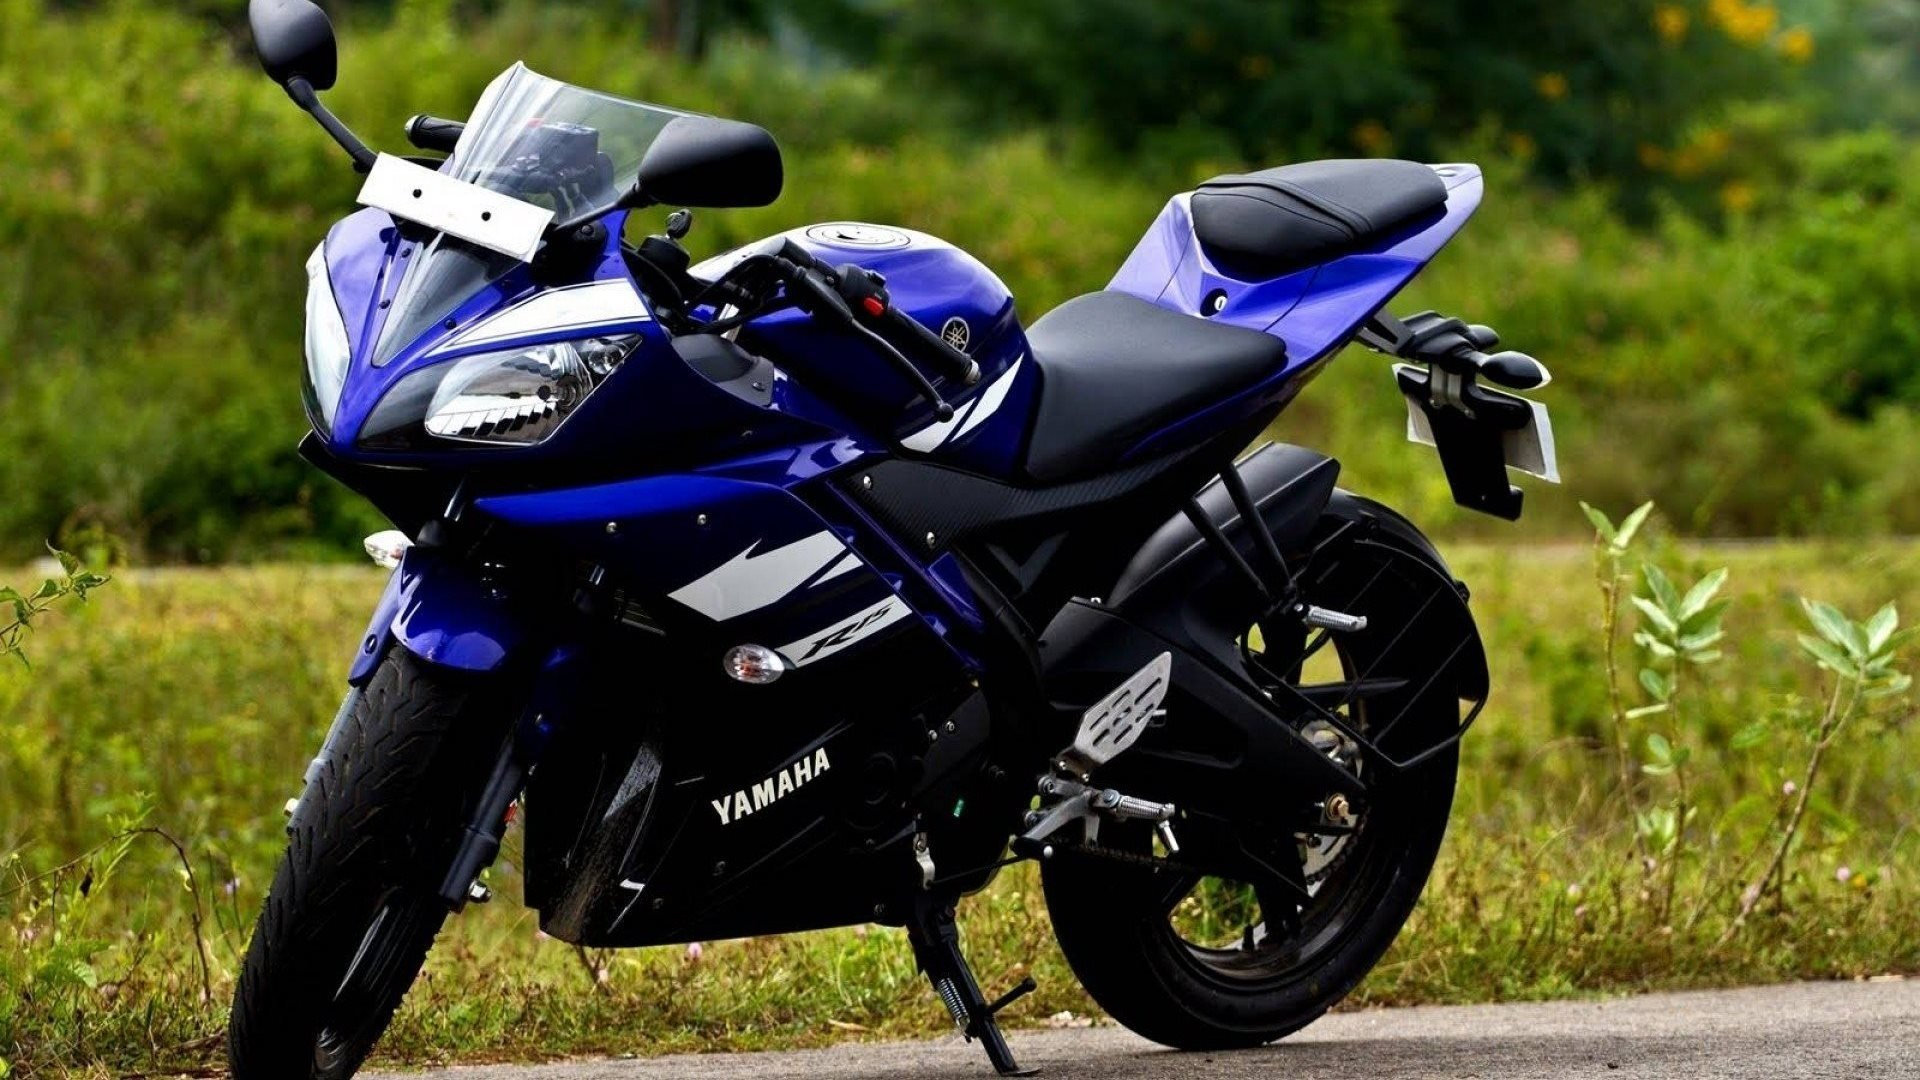 1 yamaha yzf-r15 hd wallpapers | background images - wallpaper abyss